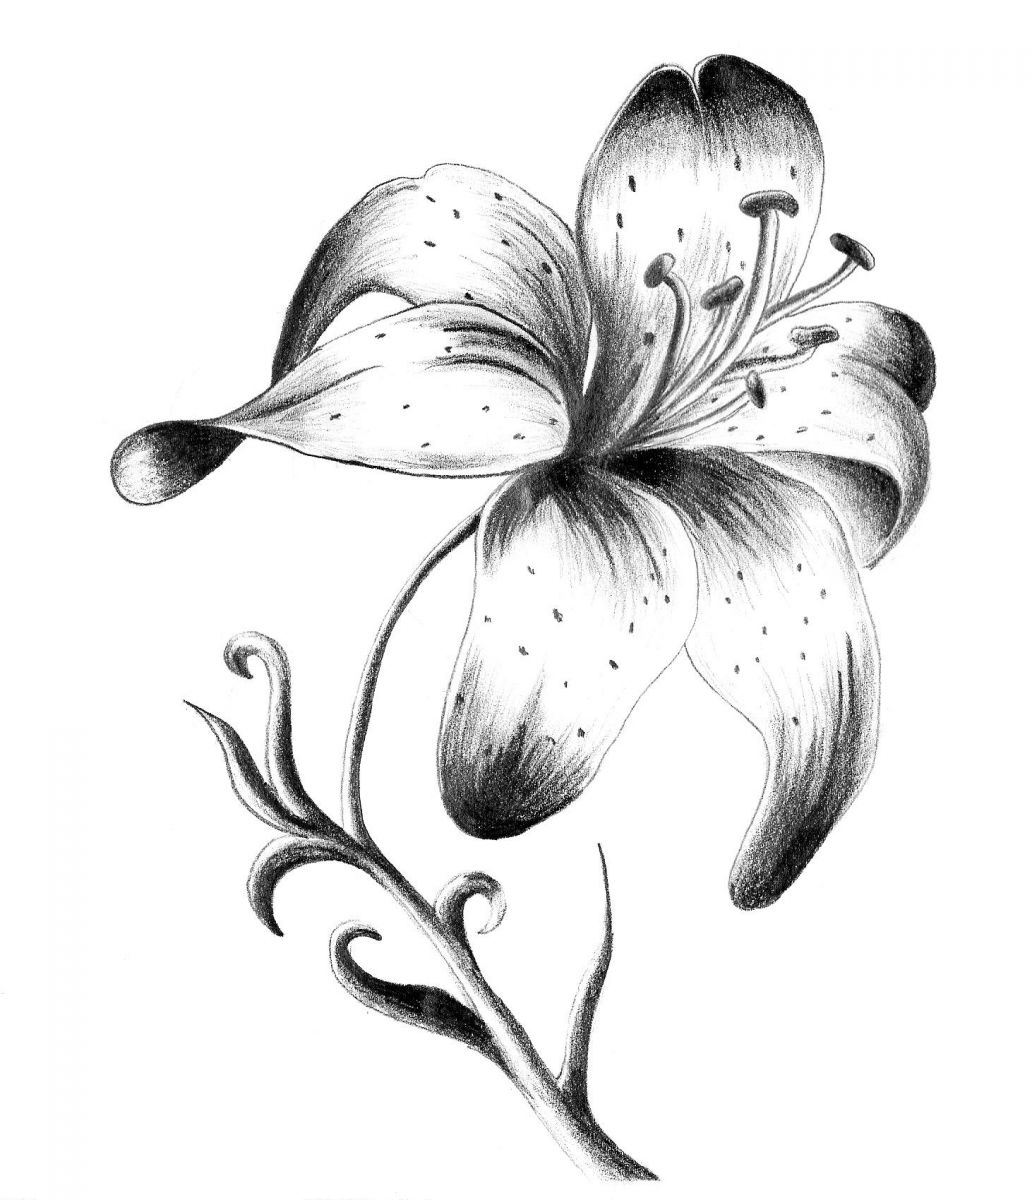 64 stargazer lily tattoos ideas 14 lily flowers tattoos designs dhlflorist Image collections